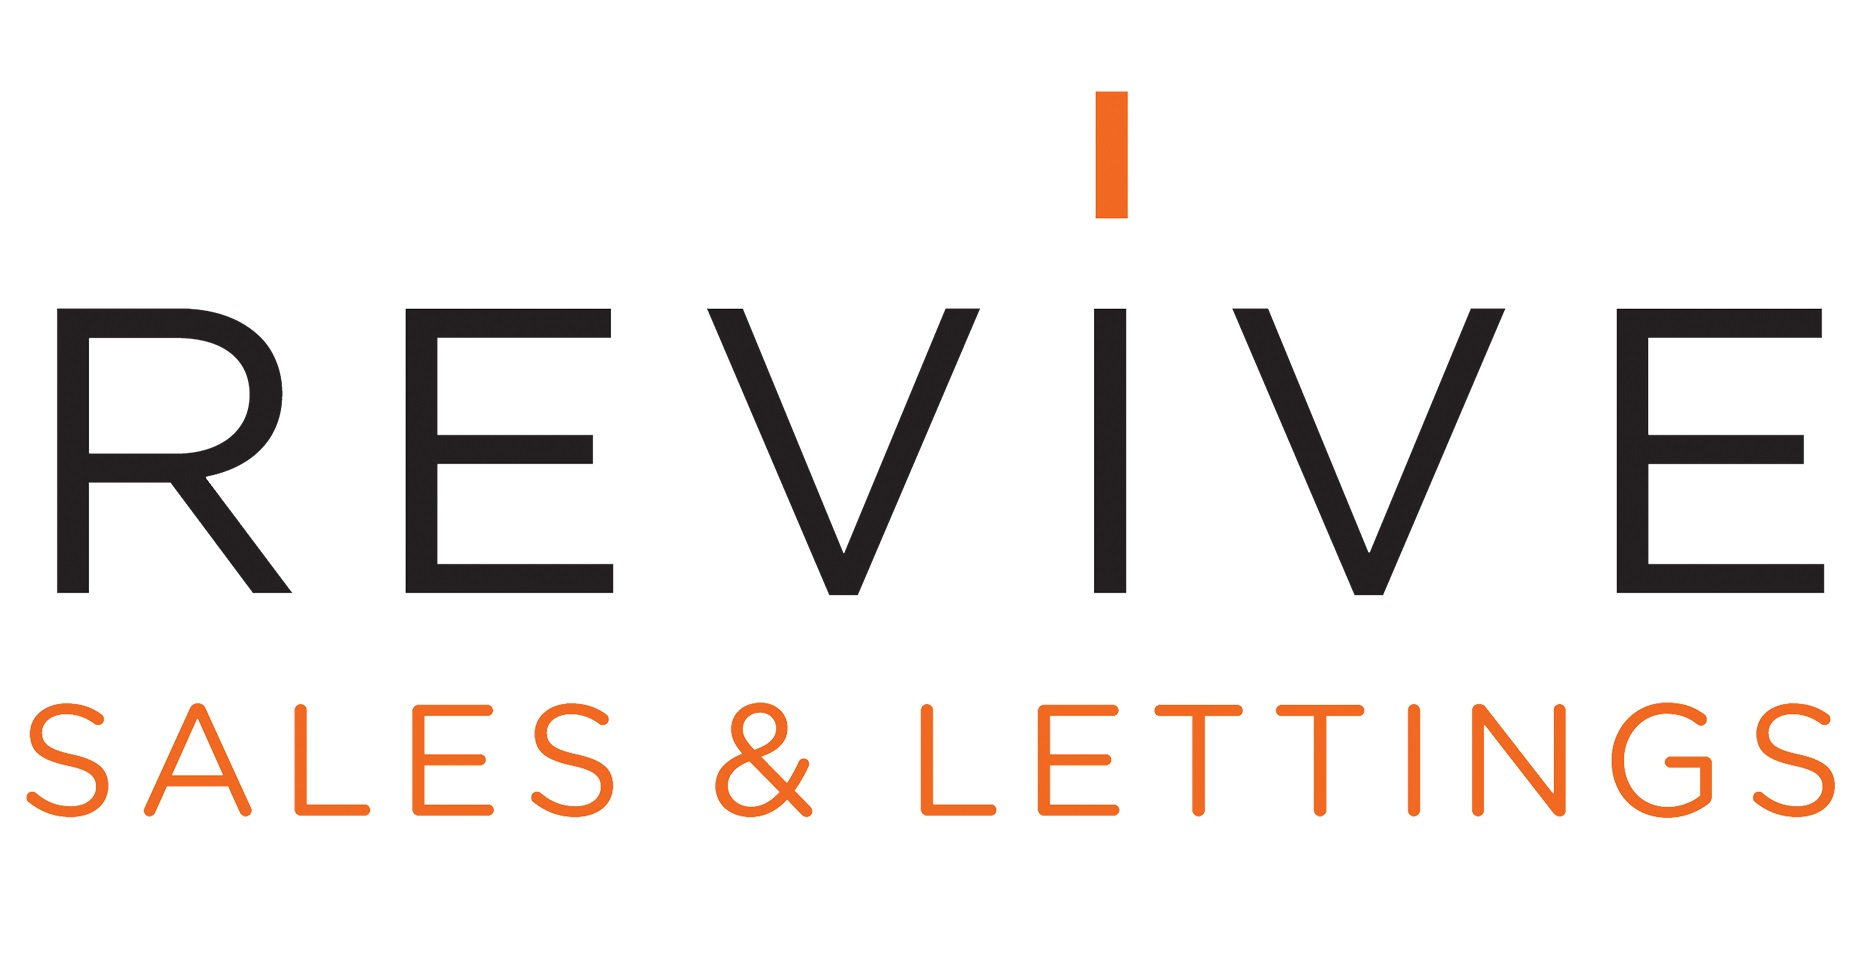 Revive Property Sales and Lettings Limited